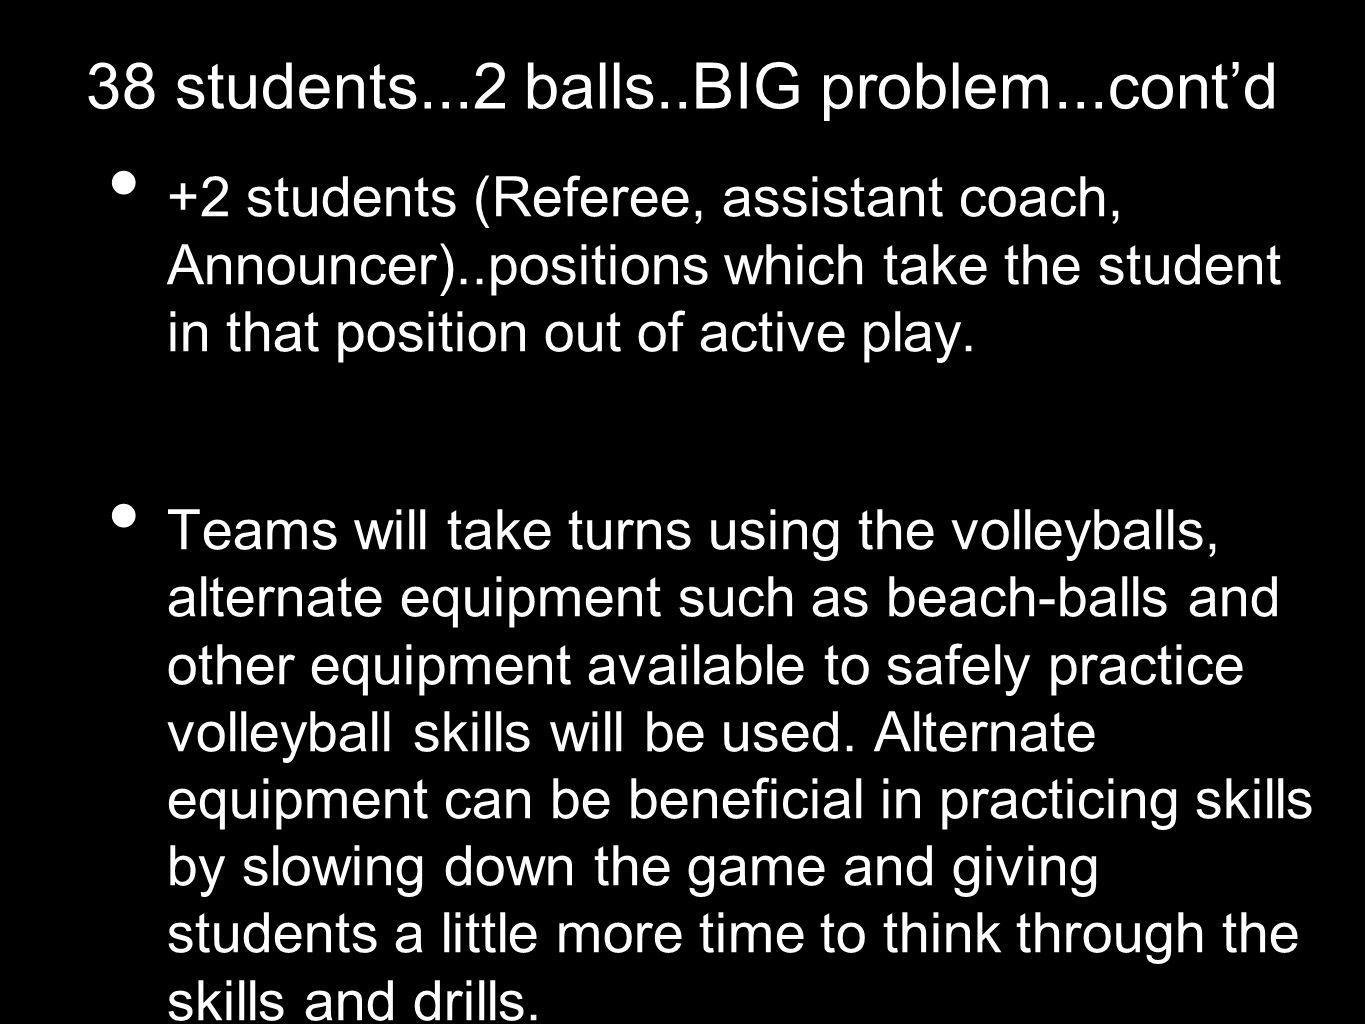 38 students...2 balls..BIG problem...contd +2 students (Referee, assistant coach, Announcer)..positions which take the student in that position out of active play.